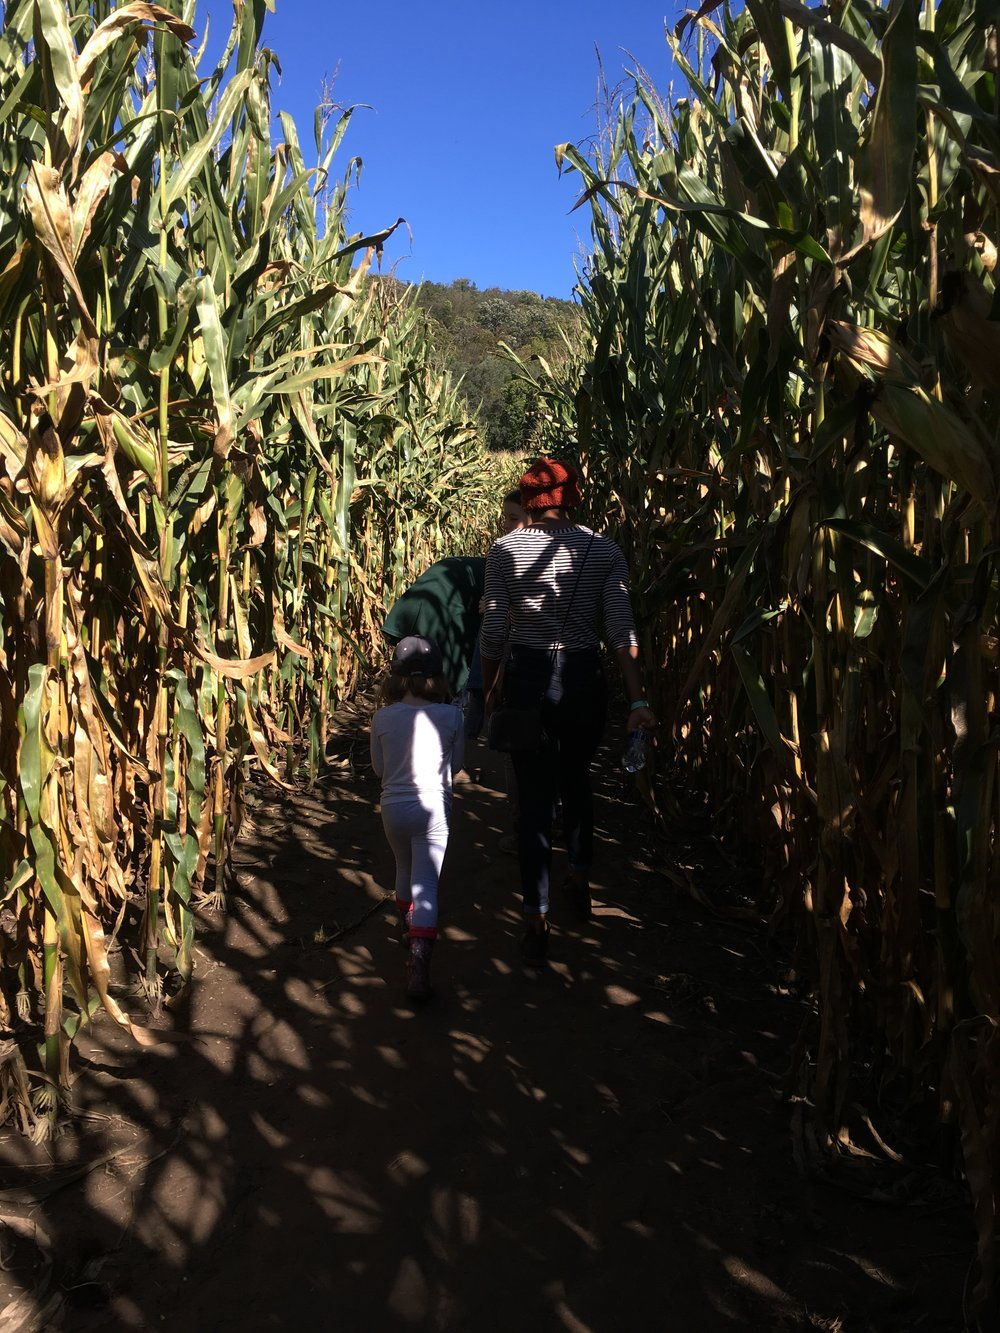 How many degrees does it take to get through the trilobite corn maze?